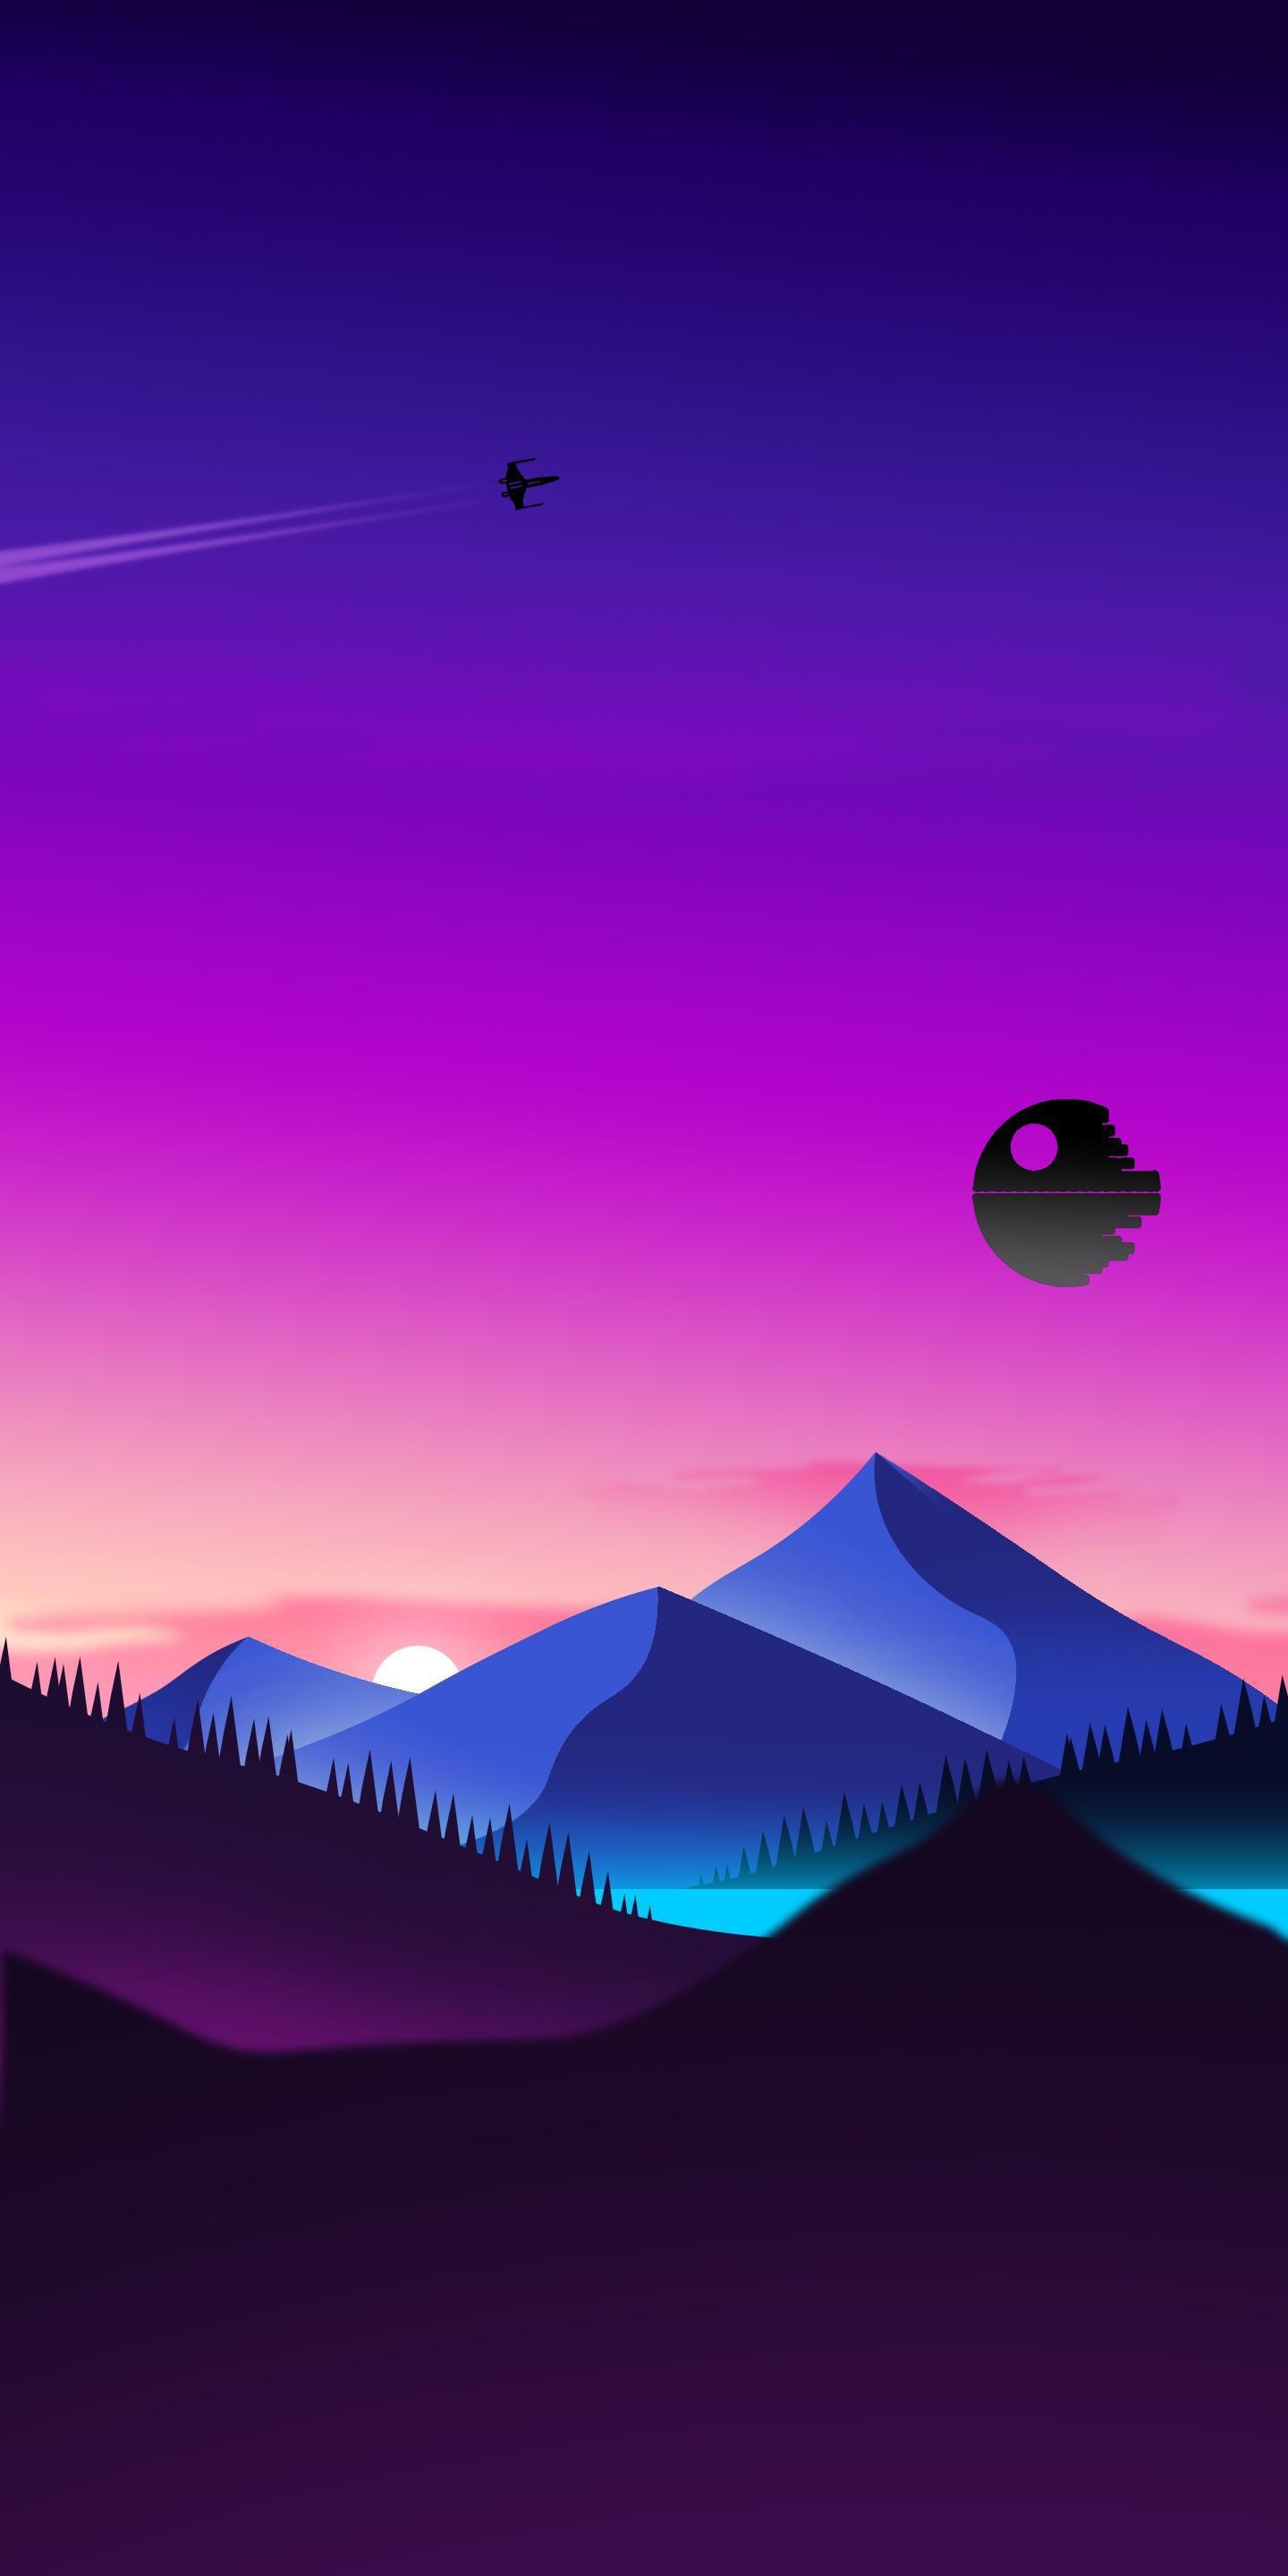 Star Wars Minimalist Wallpapers Wallpaper Cave